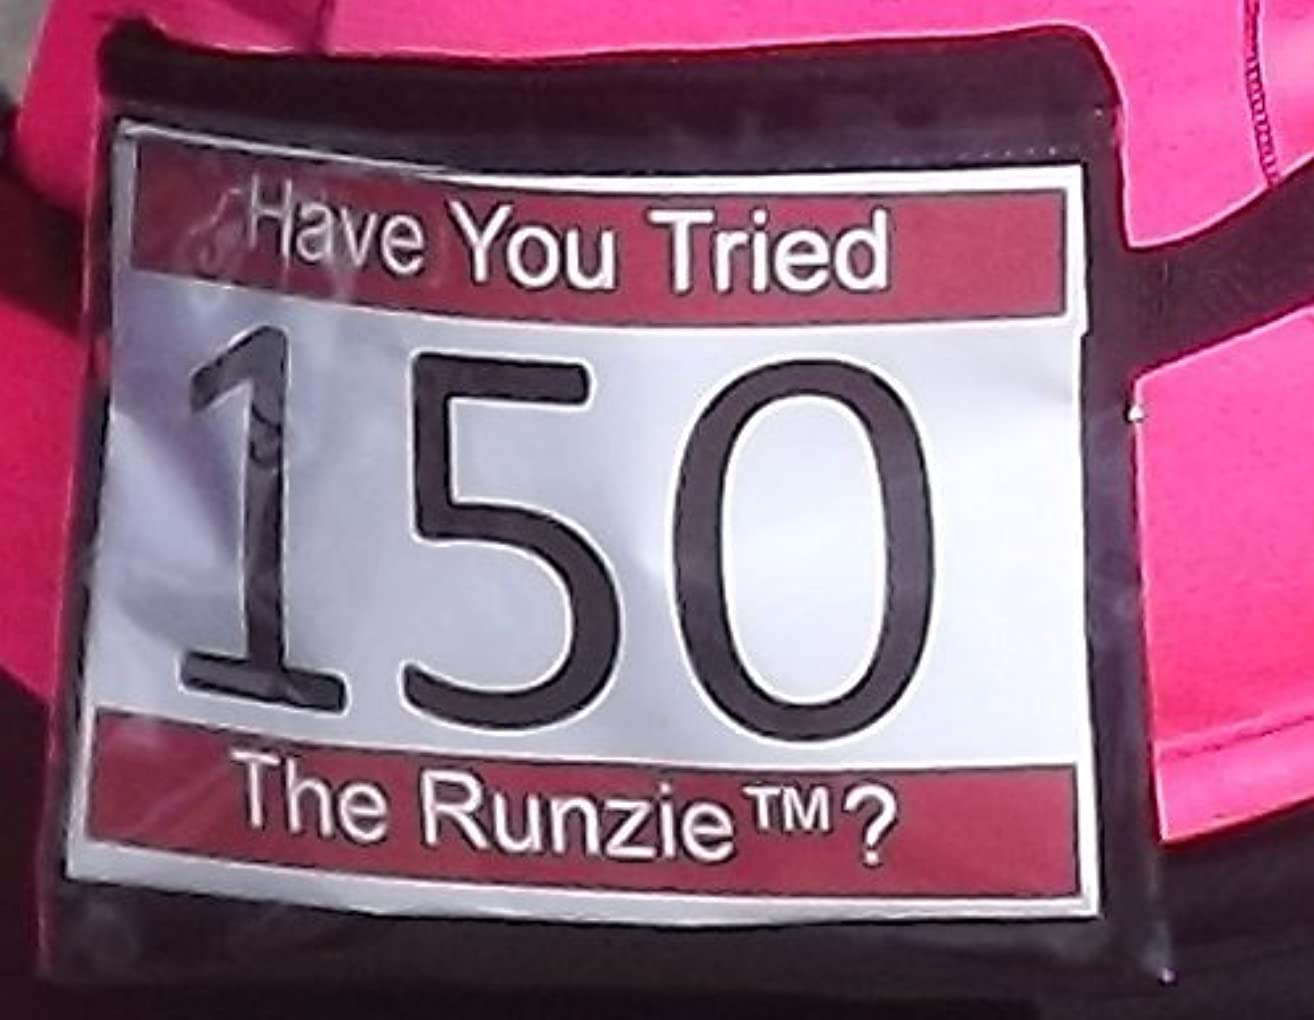 Runzie The Adjustable Running Belt with Bib Holder, Race bib Holder, Race Number Belt, Waist Pack